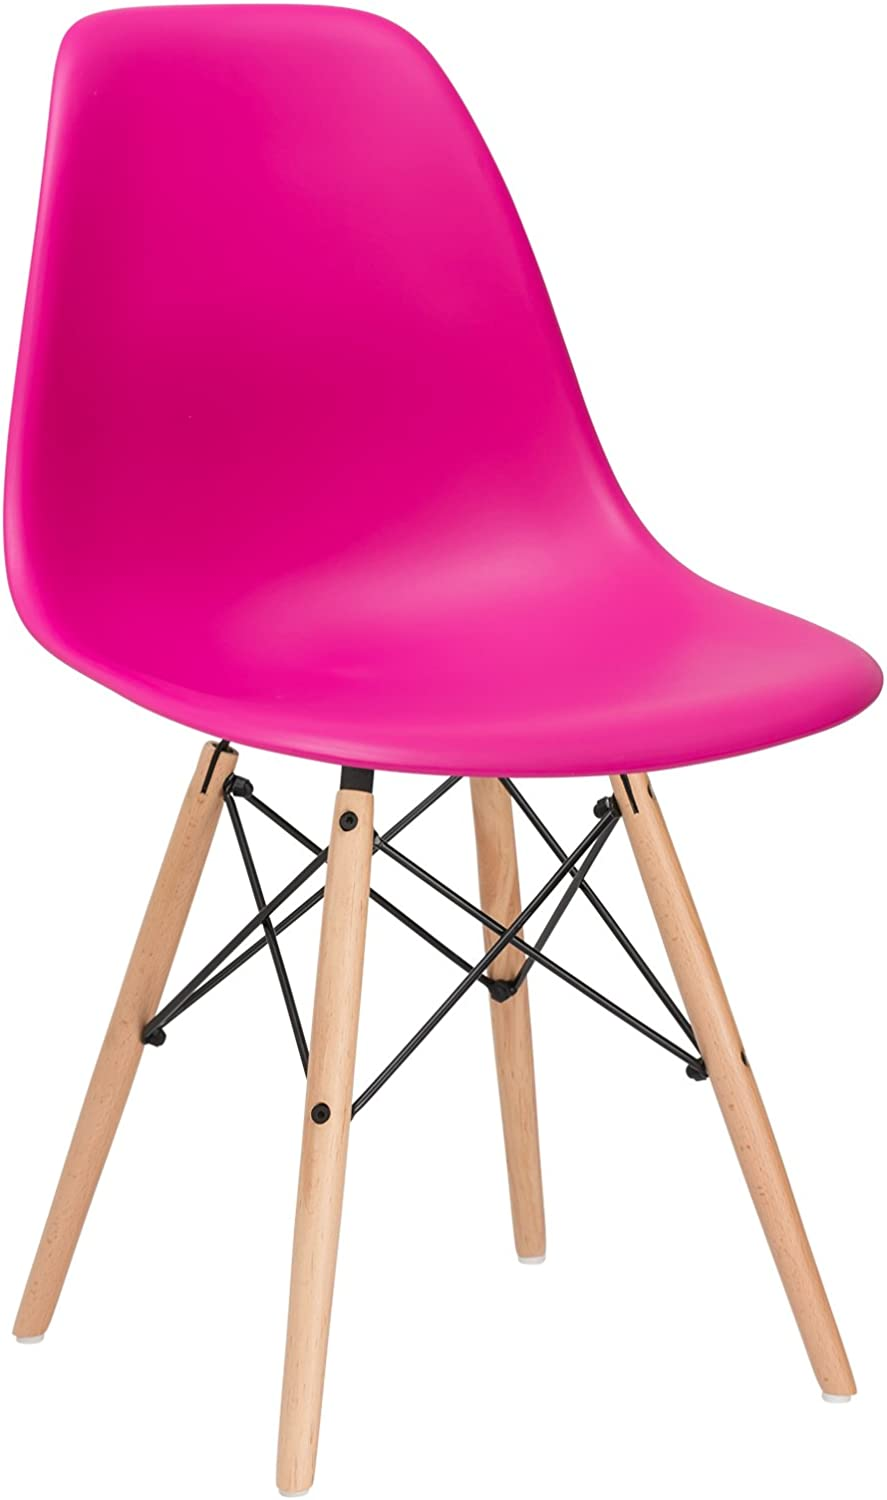 Poly and Bark Eames Style Molded Plastic Dowel-Leg Side Chair with Natural Legs, Fuchsia